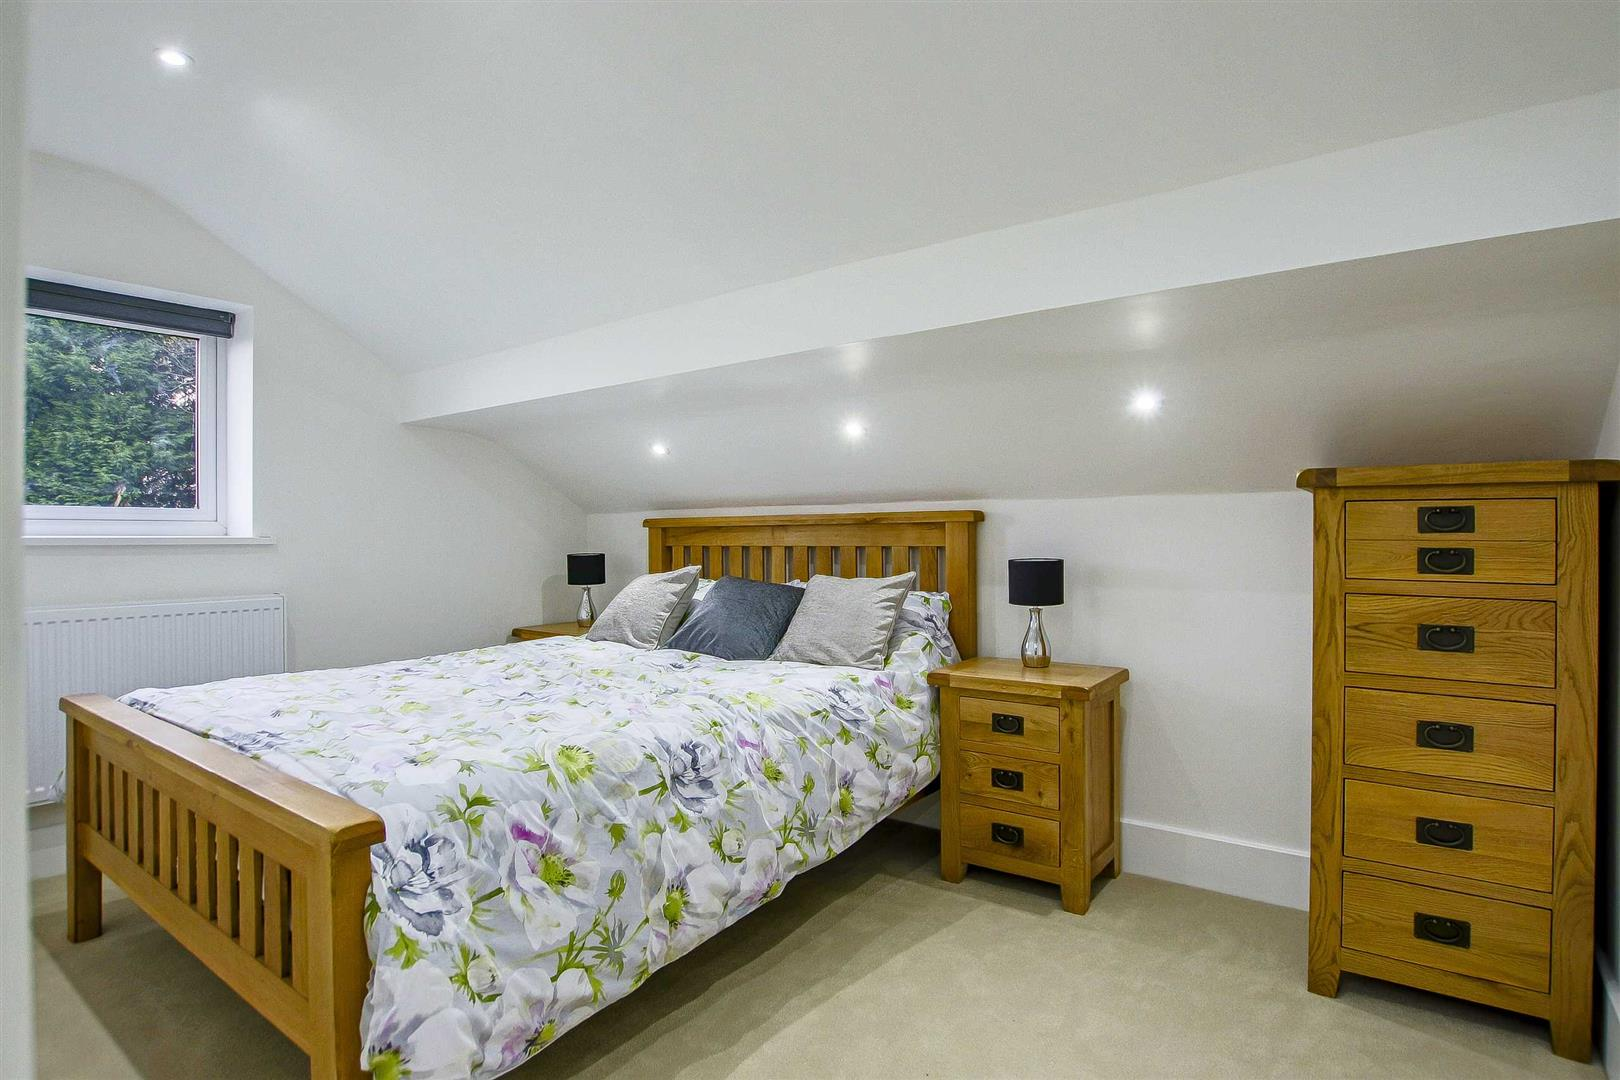 7 Bedroom Detached House For Sale - Image 30